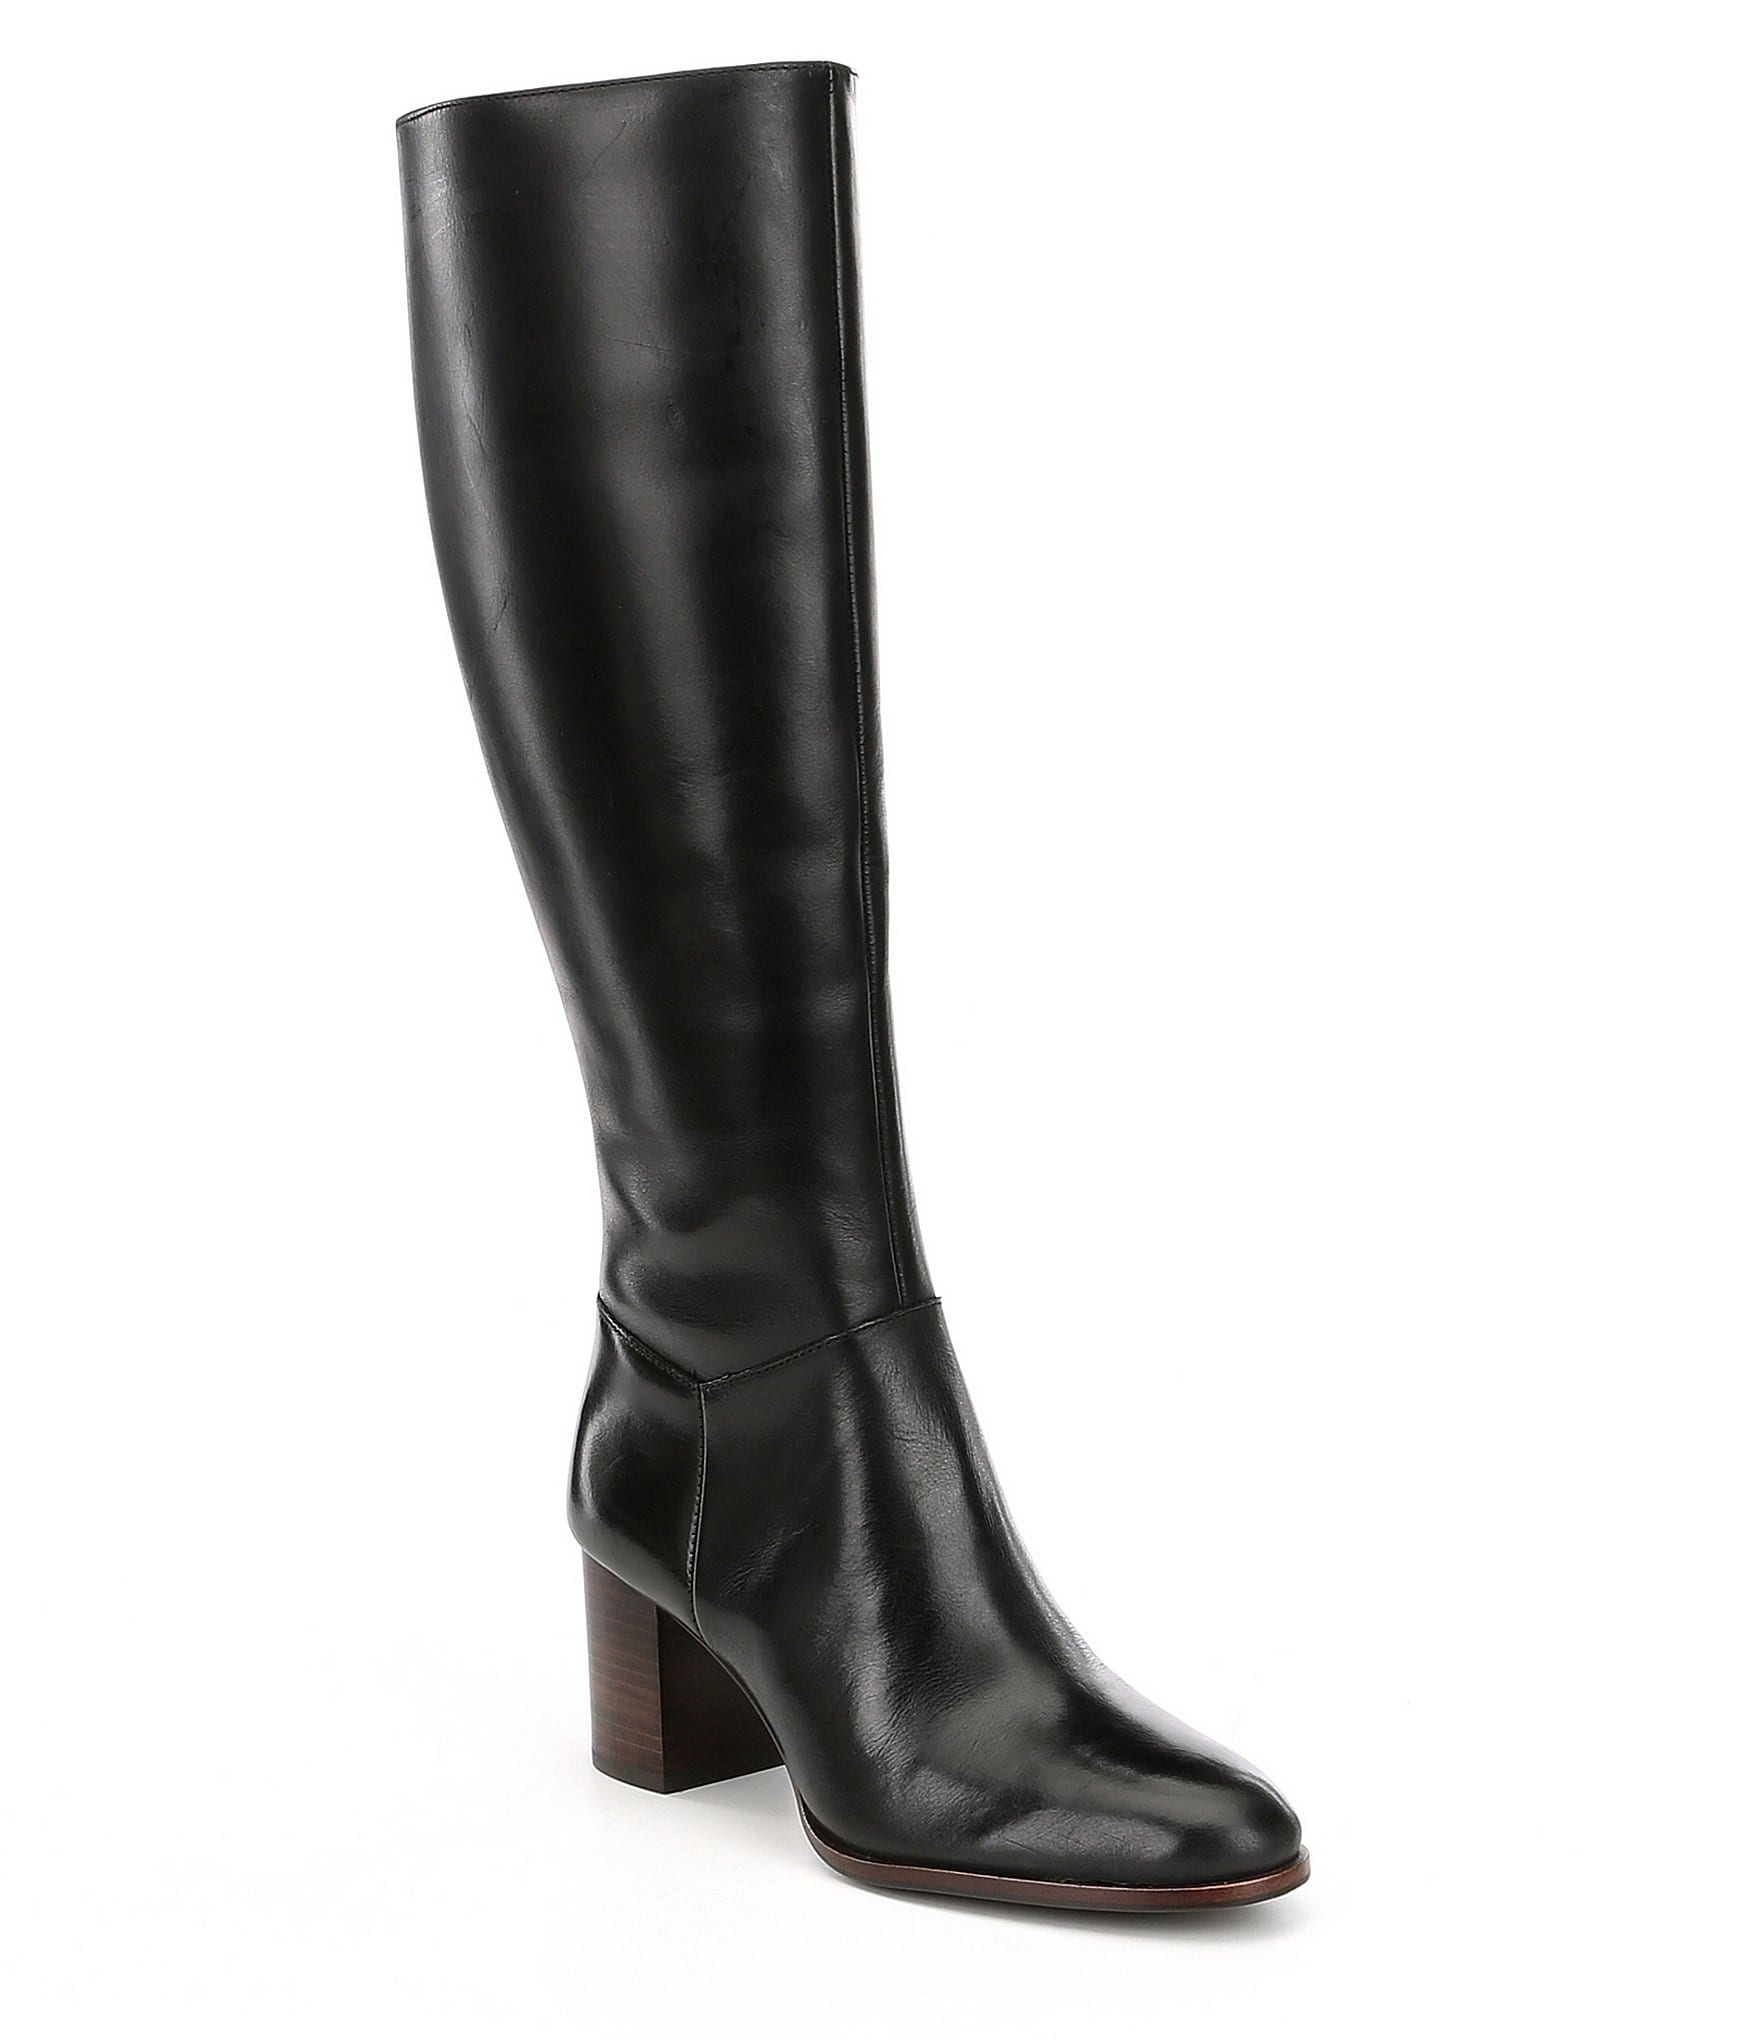 Simple Womens Narrow Calf Boots - 28 Images - Solemani S Paradise Black Leather Boots Narrow Calf ...